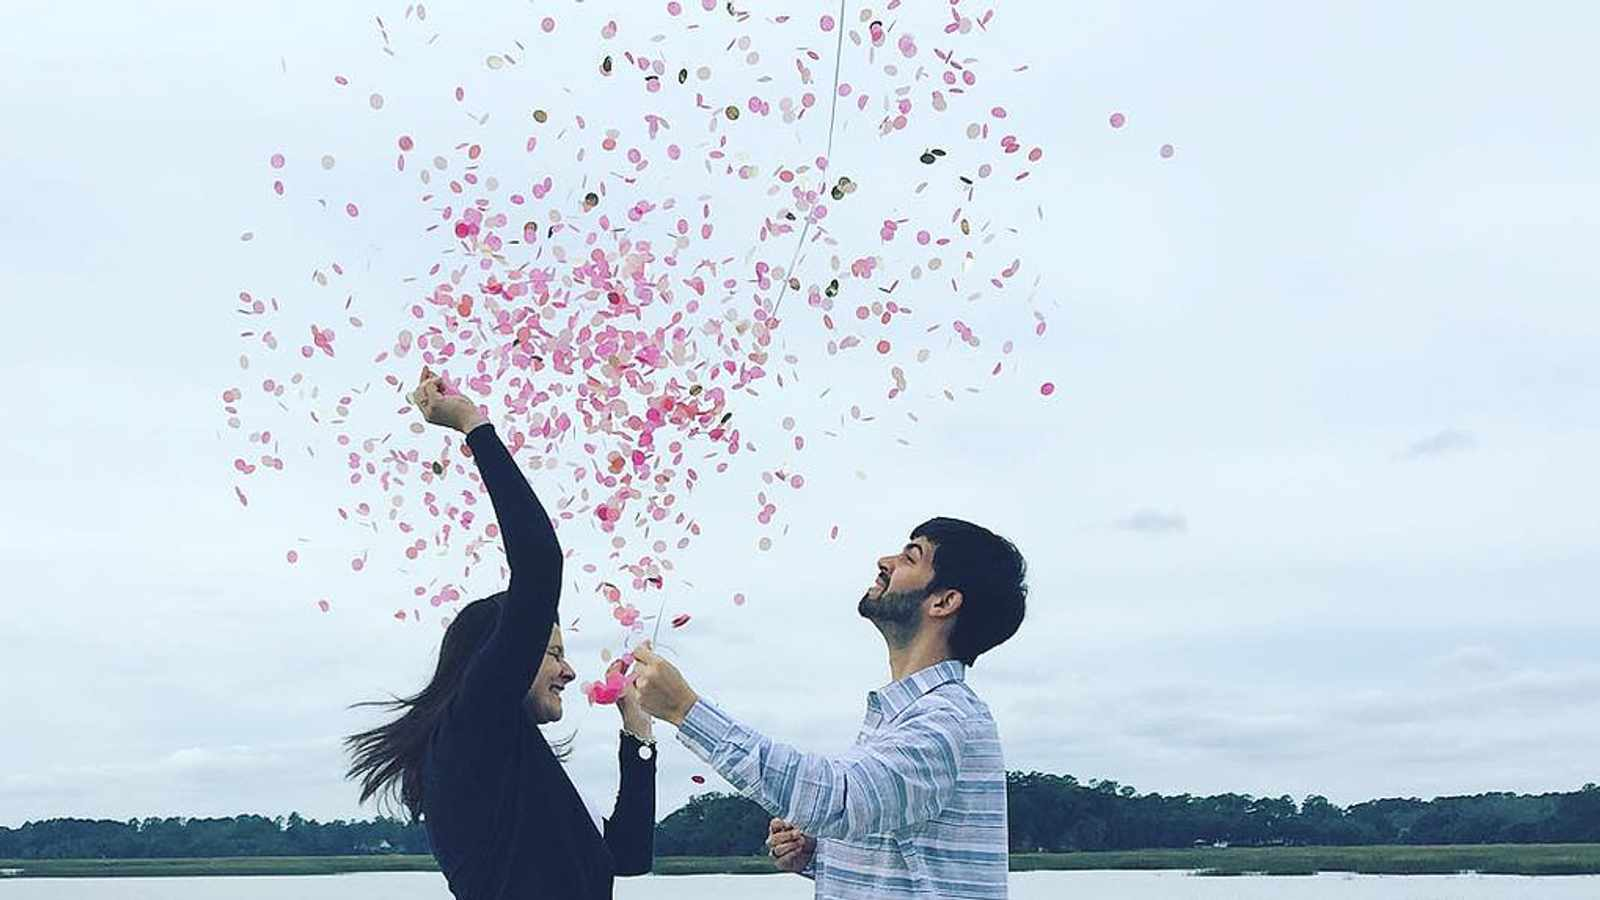 Gender reveals: Do we really need to know?